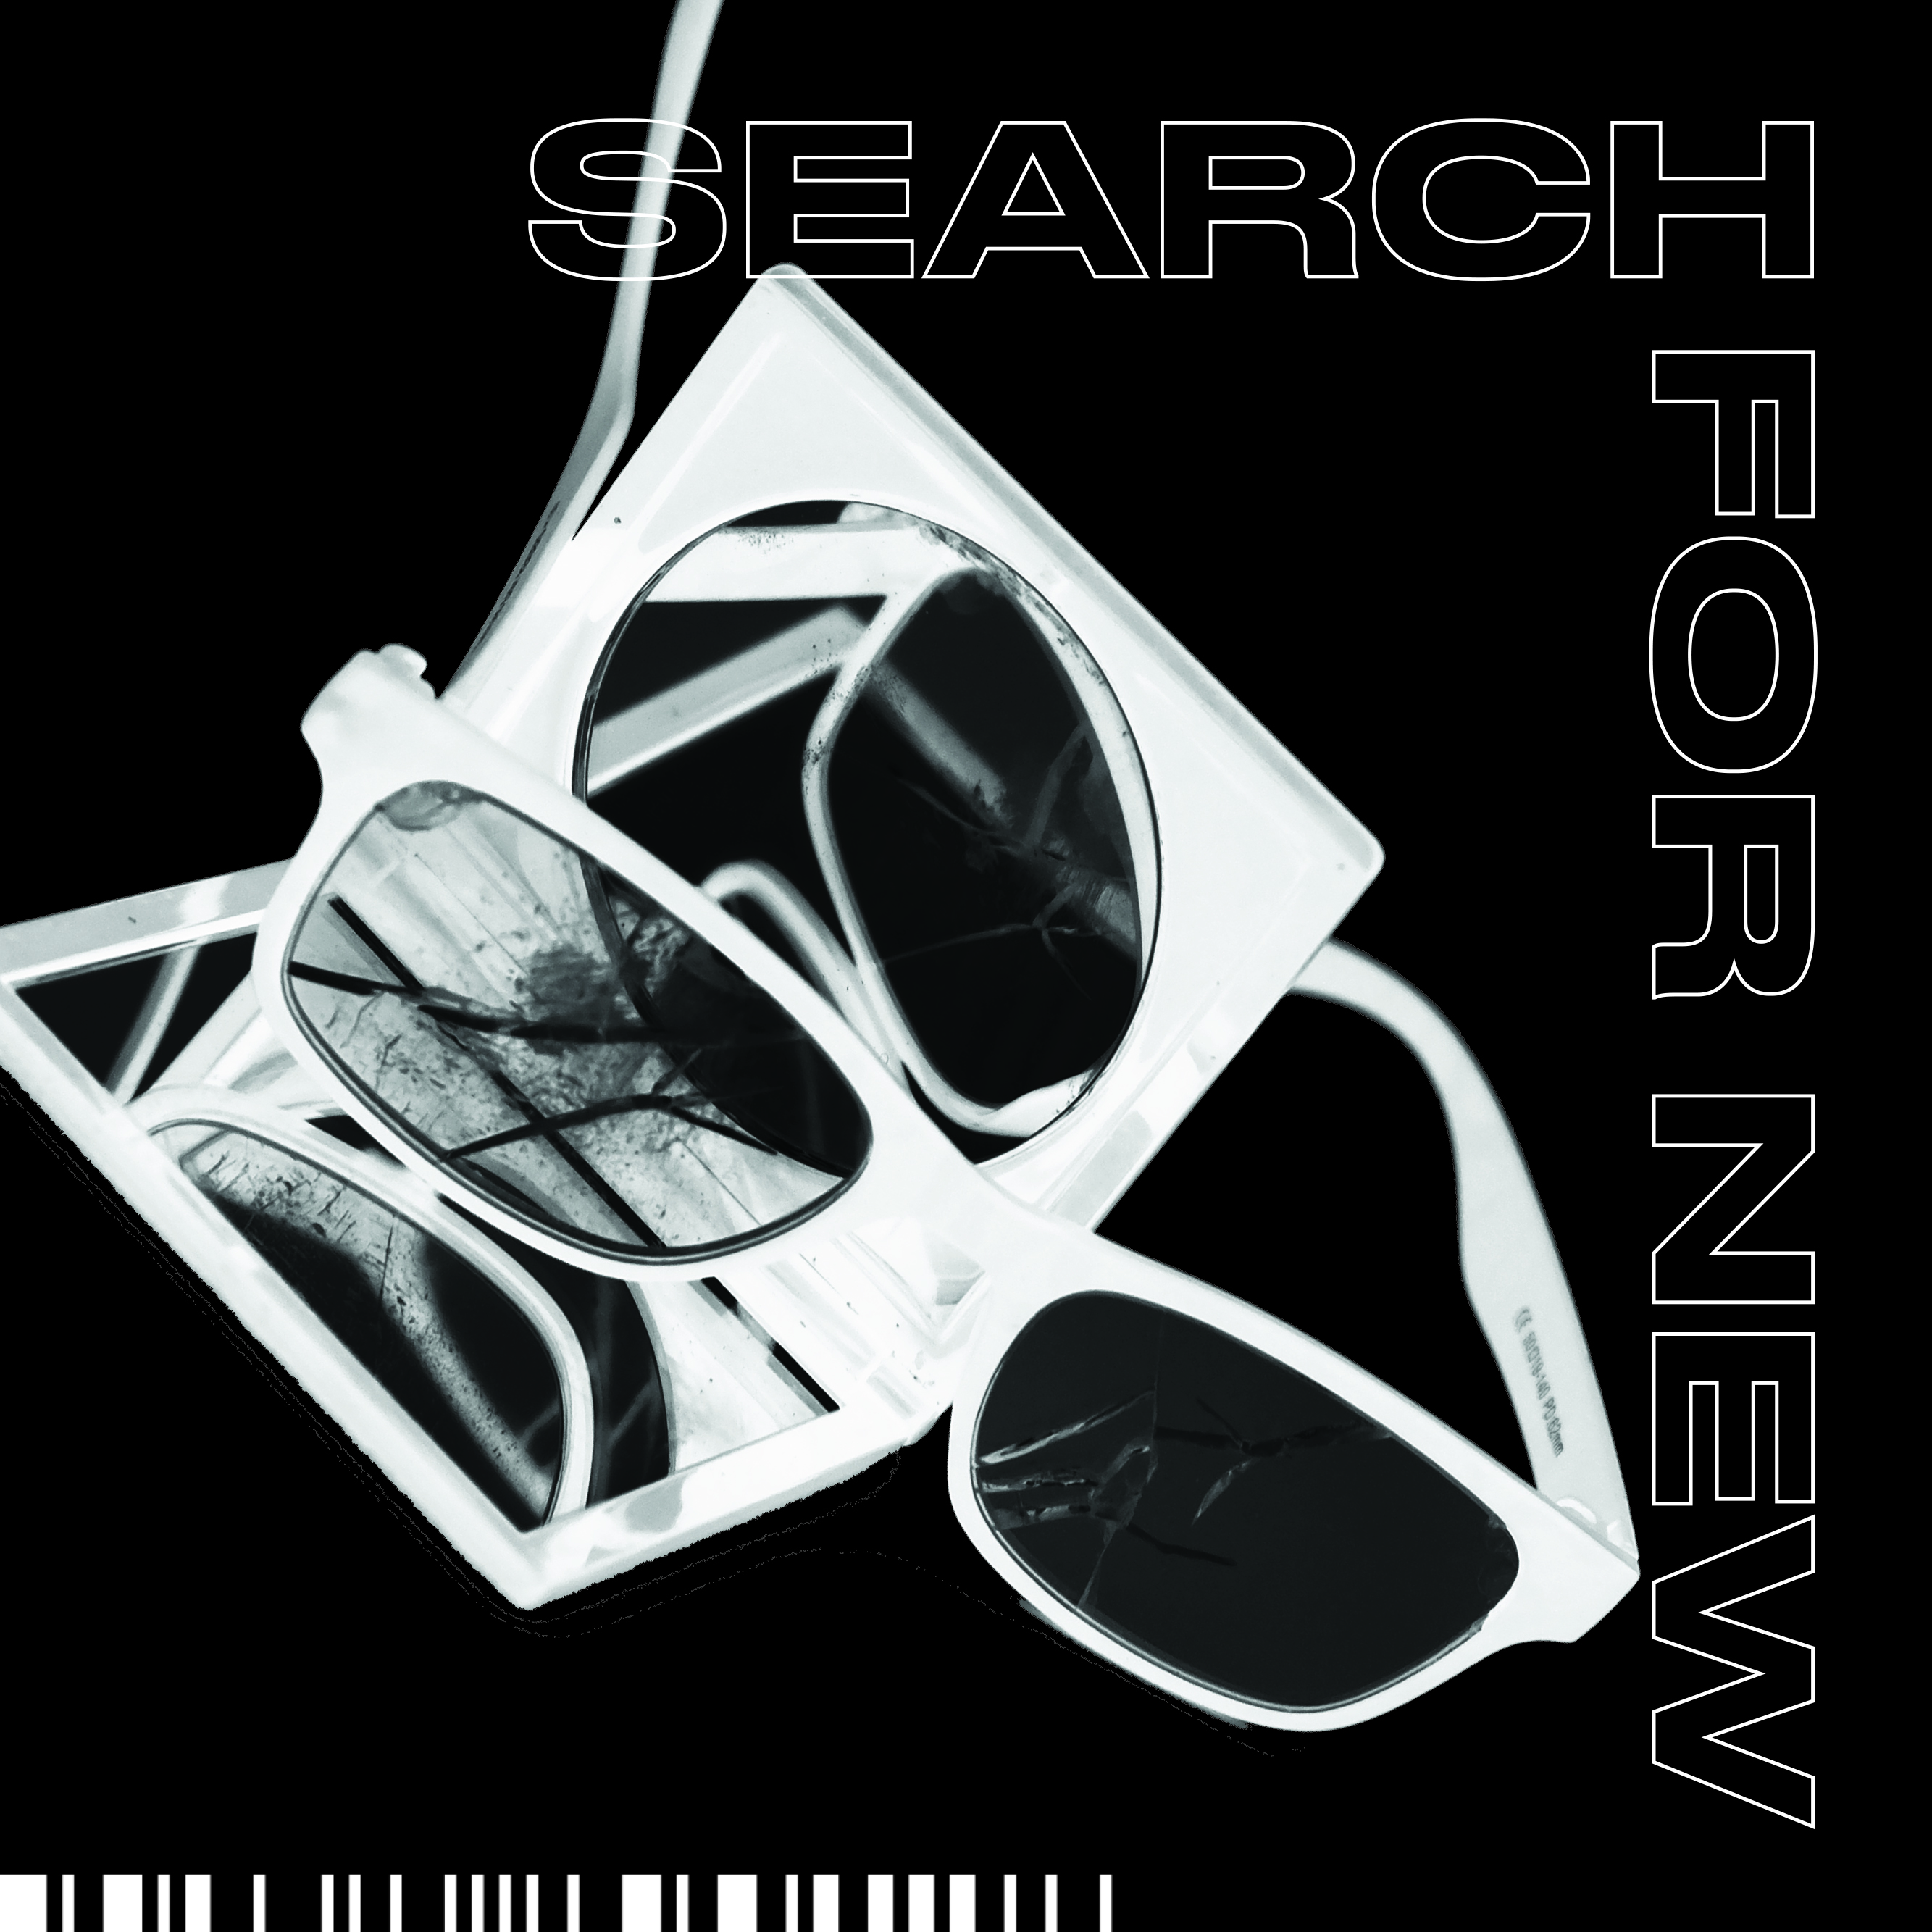 Search For New – Publication Launch Friday 18th May